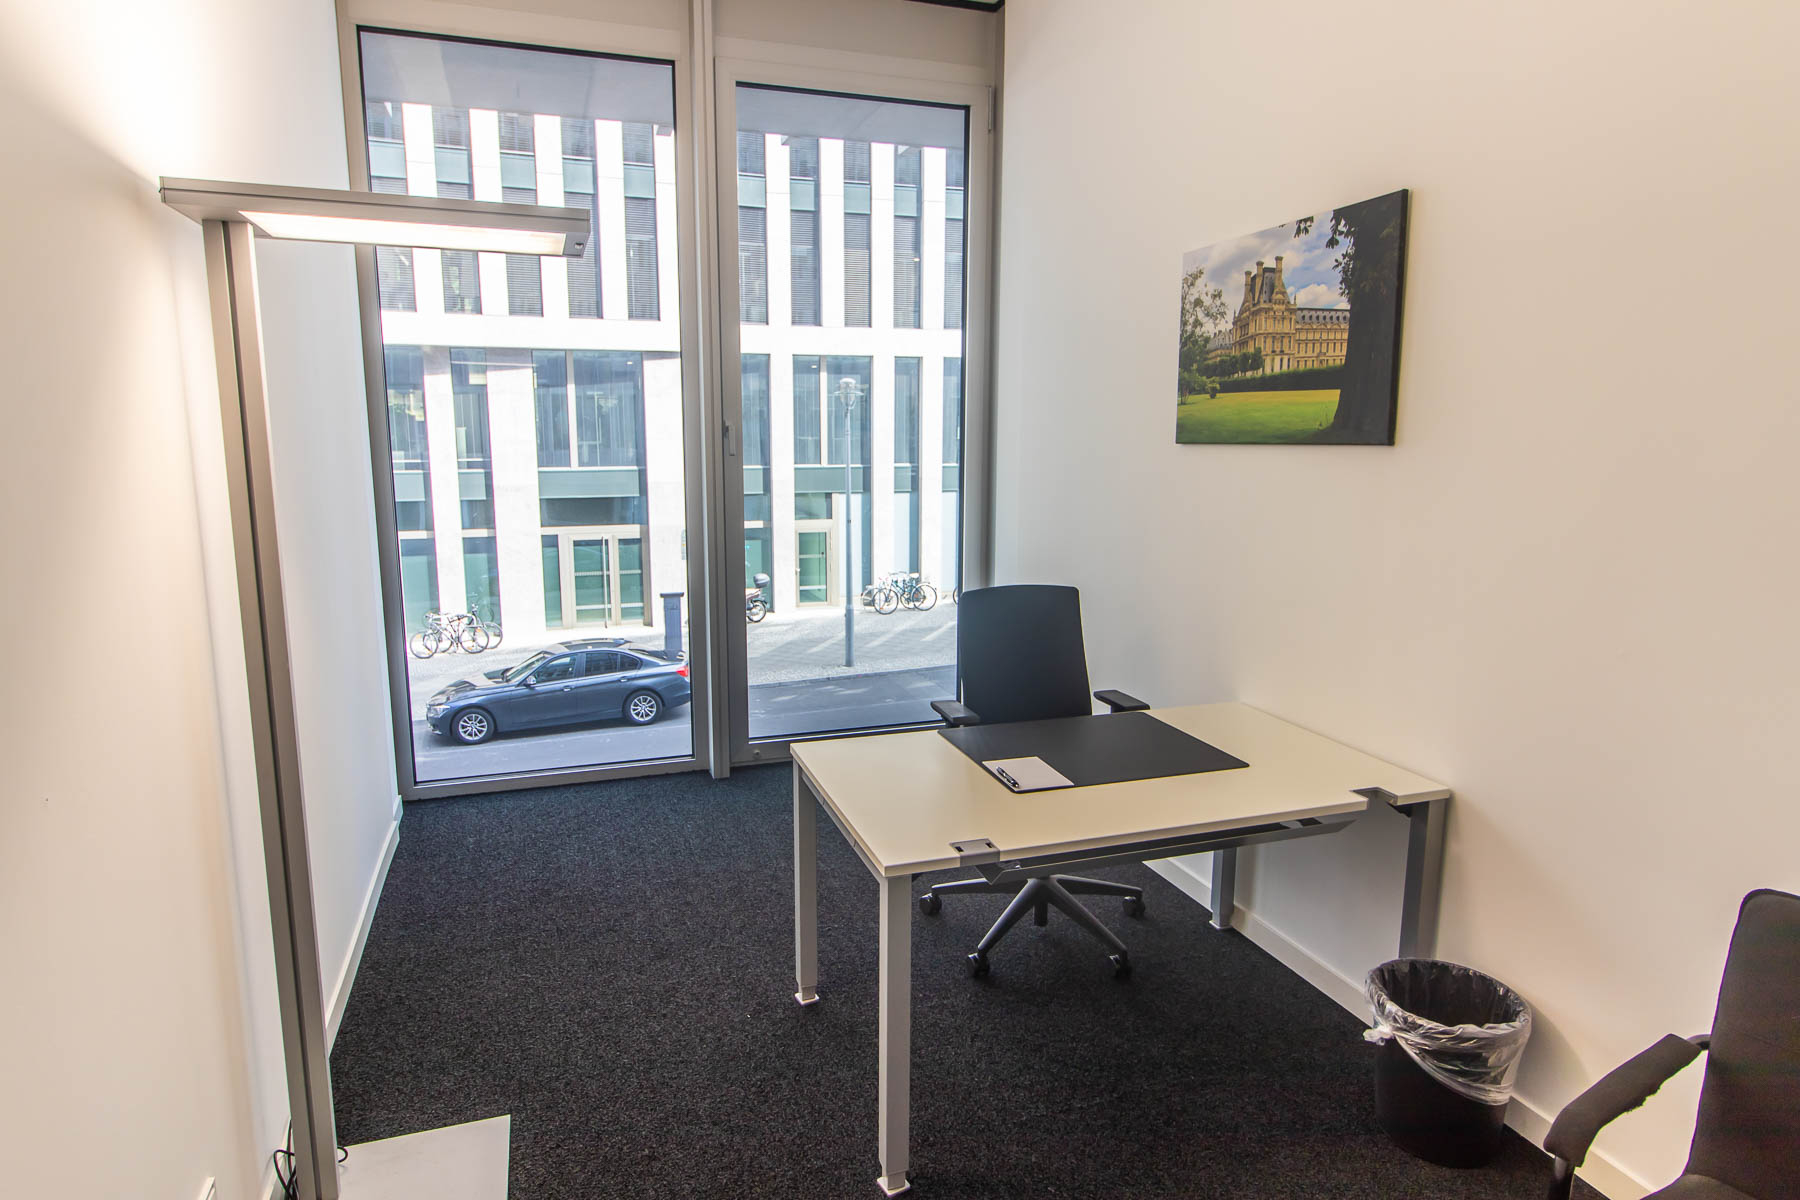 Rent office space Bertha-Benz-Straße 5, Berlin (8)